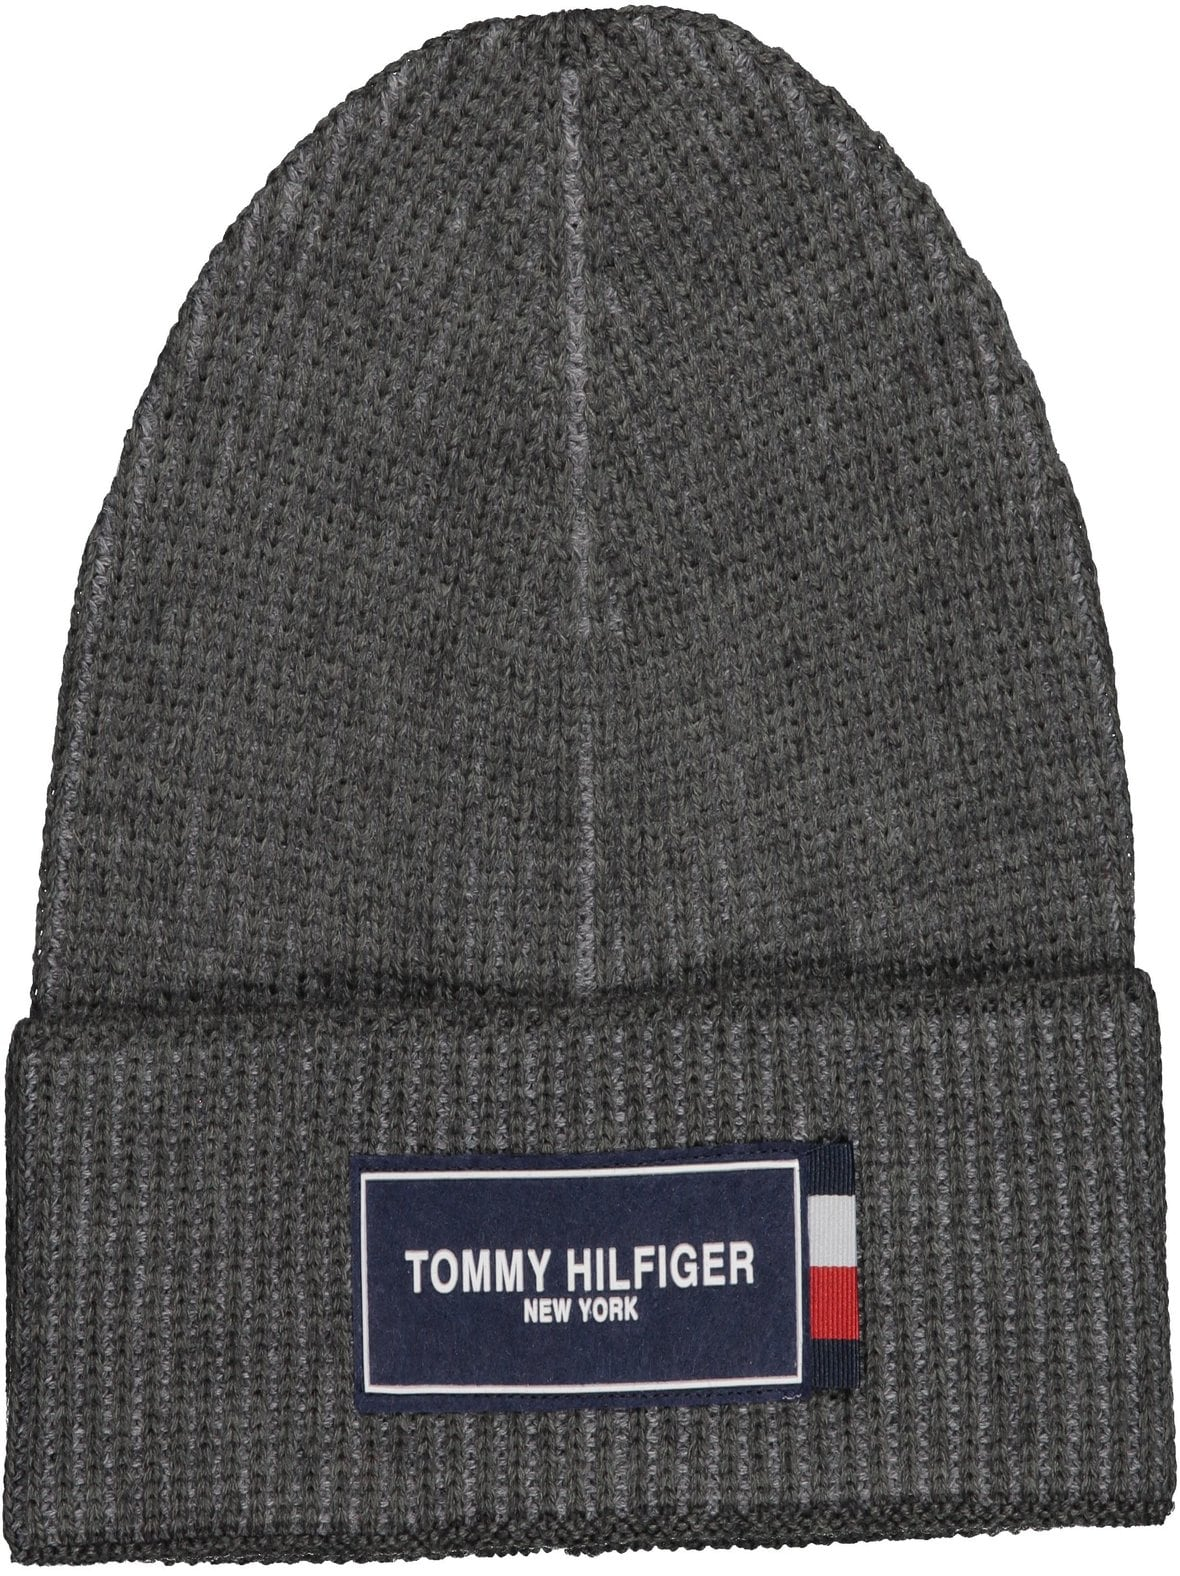 Light Grey (harmaa) Tommy Hilfiger Pipo AM0AM03989  3925c8afe1